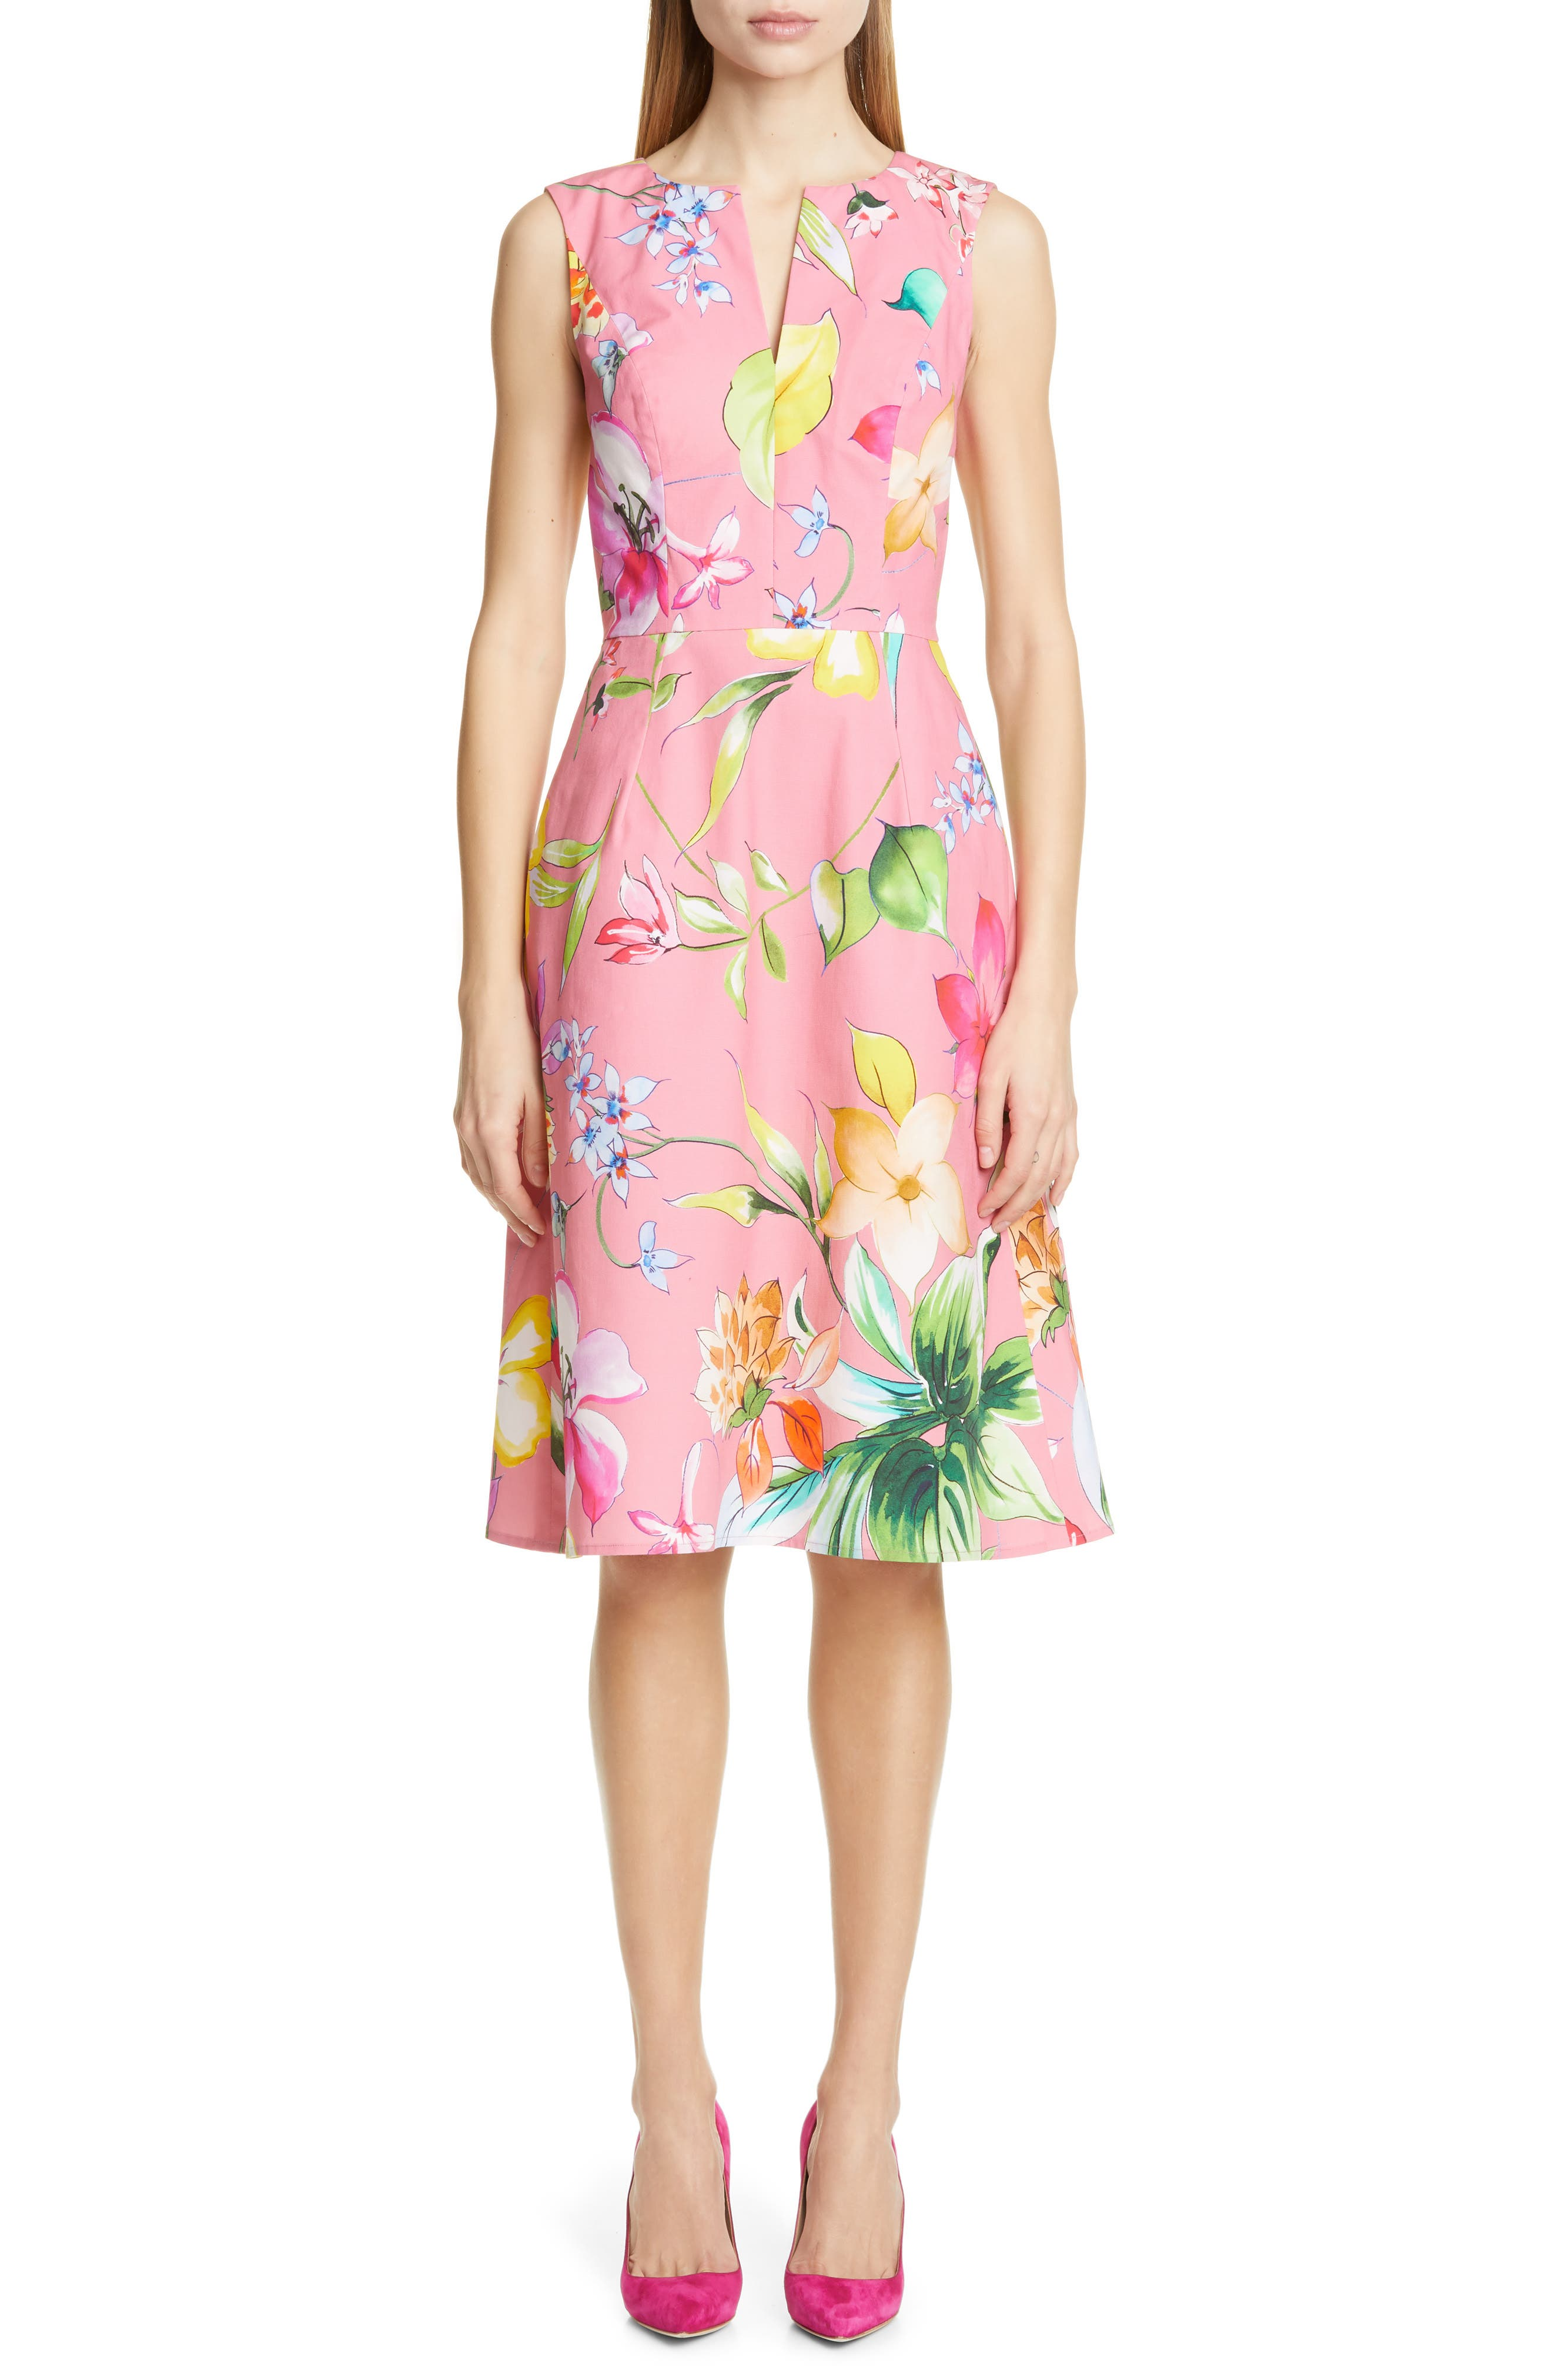 Floral Cocktail Dress by Carolina Herrera